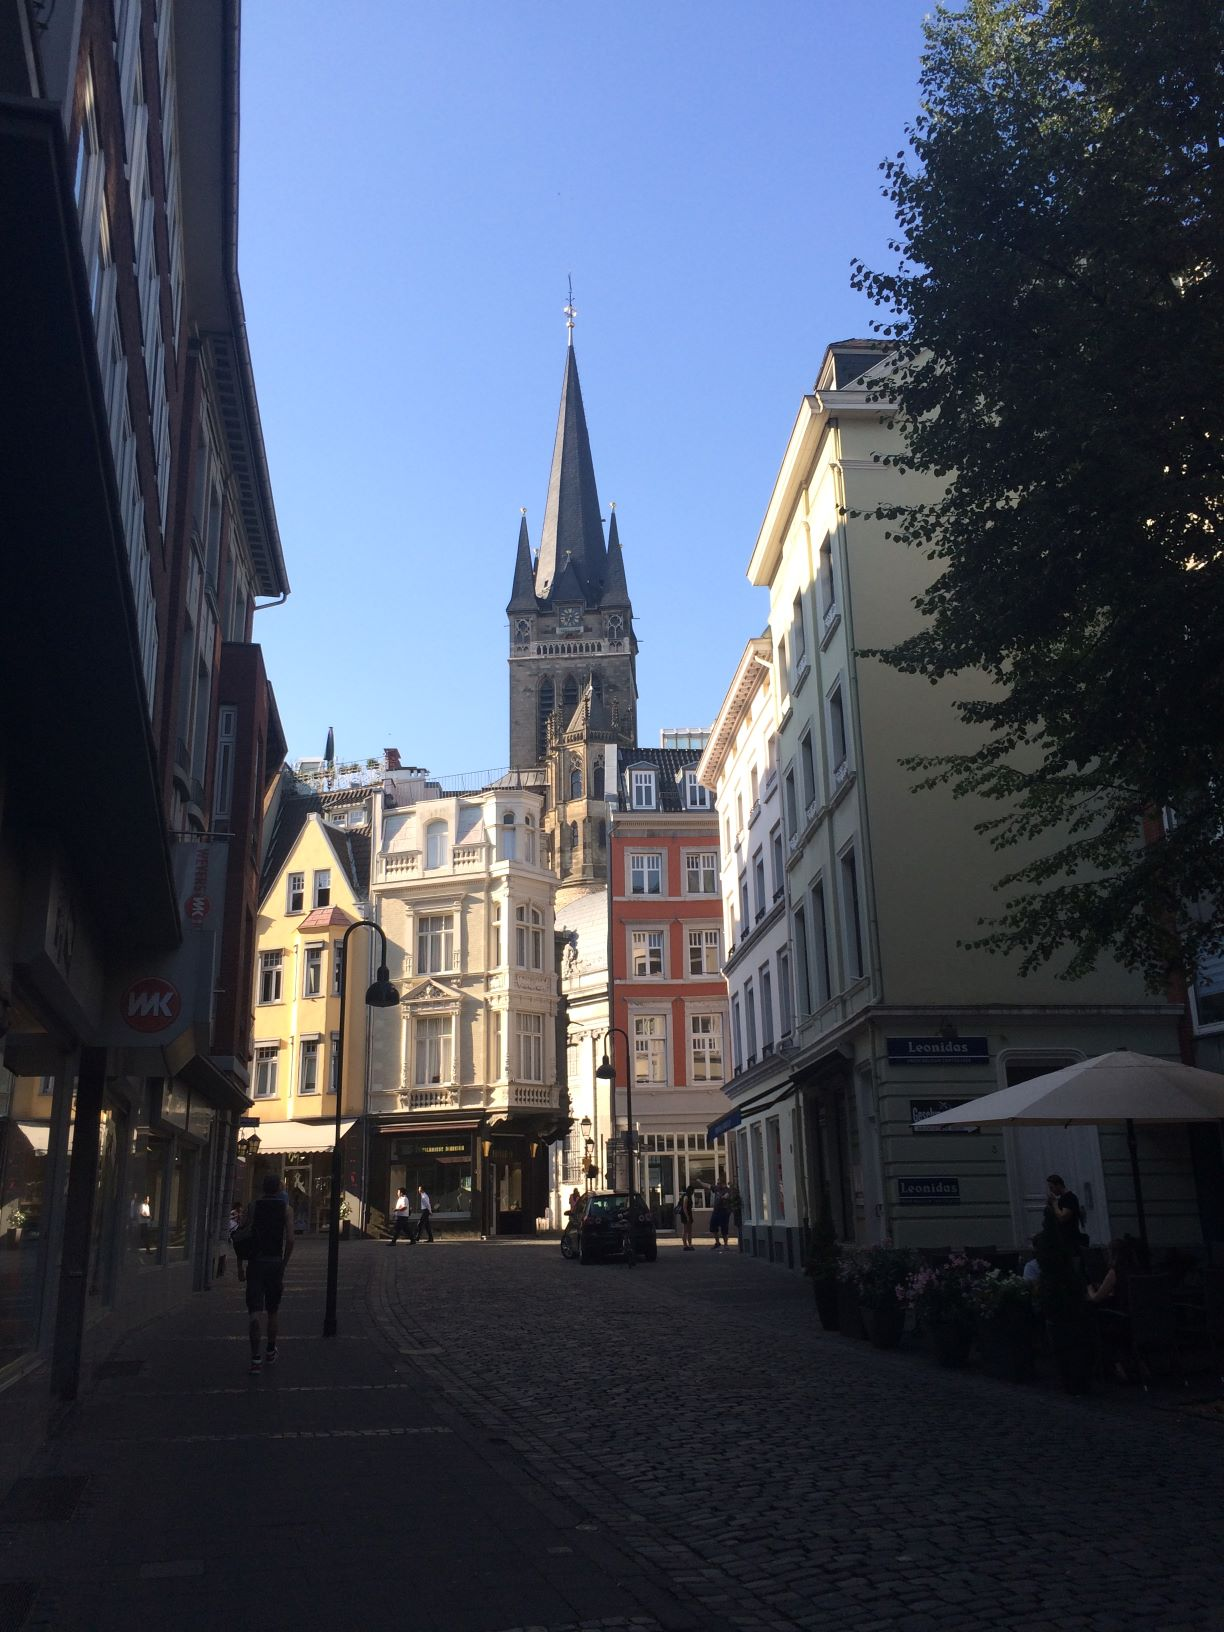 A view of one side of Aachen's cathedral from its old town center.